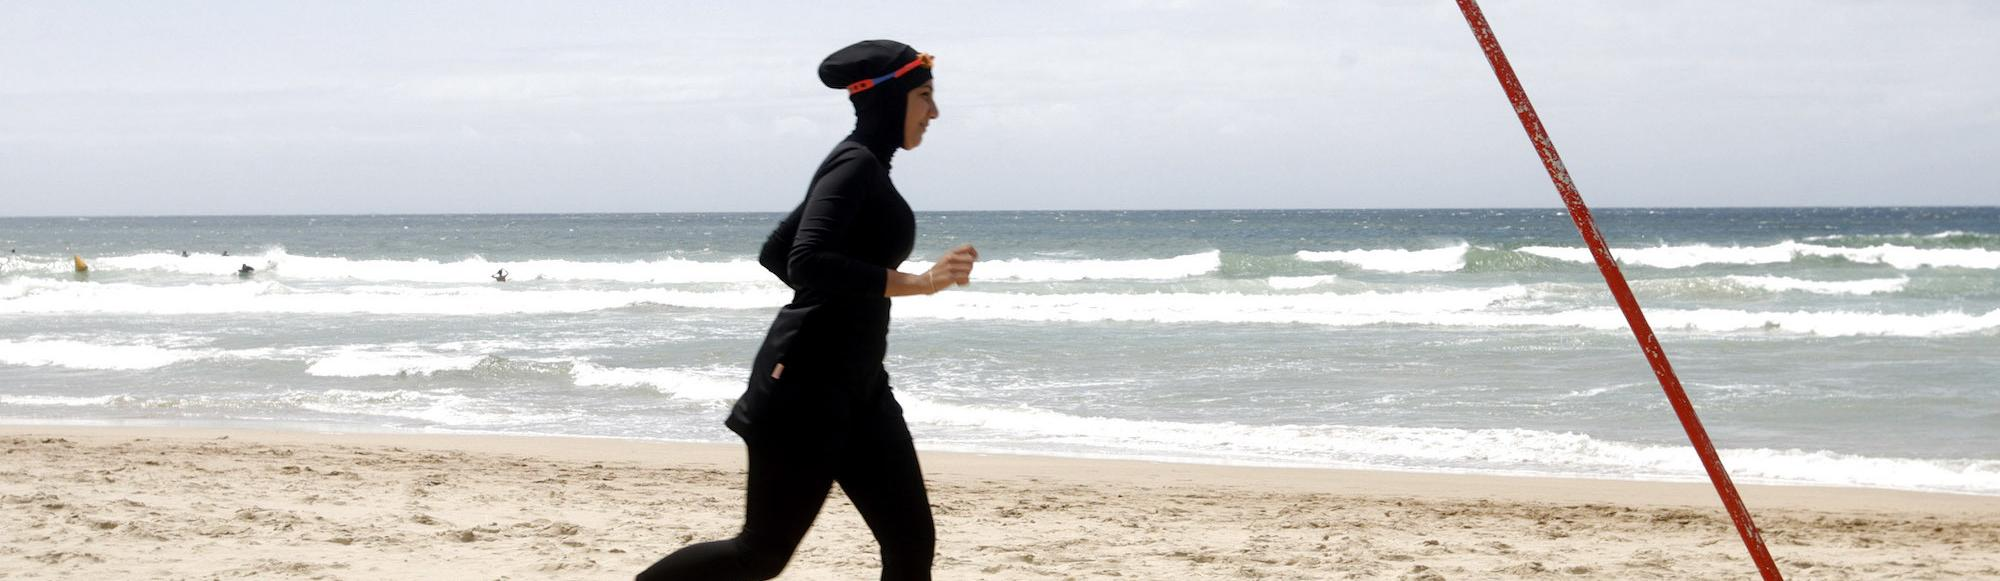 Burkinis are now banned in Cannes